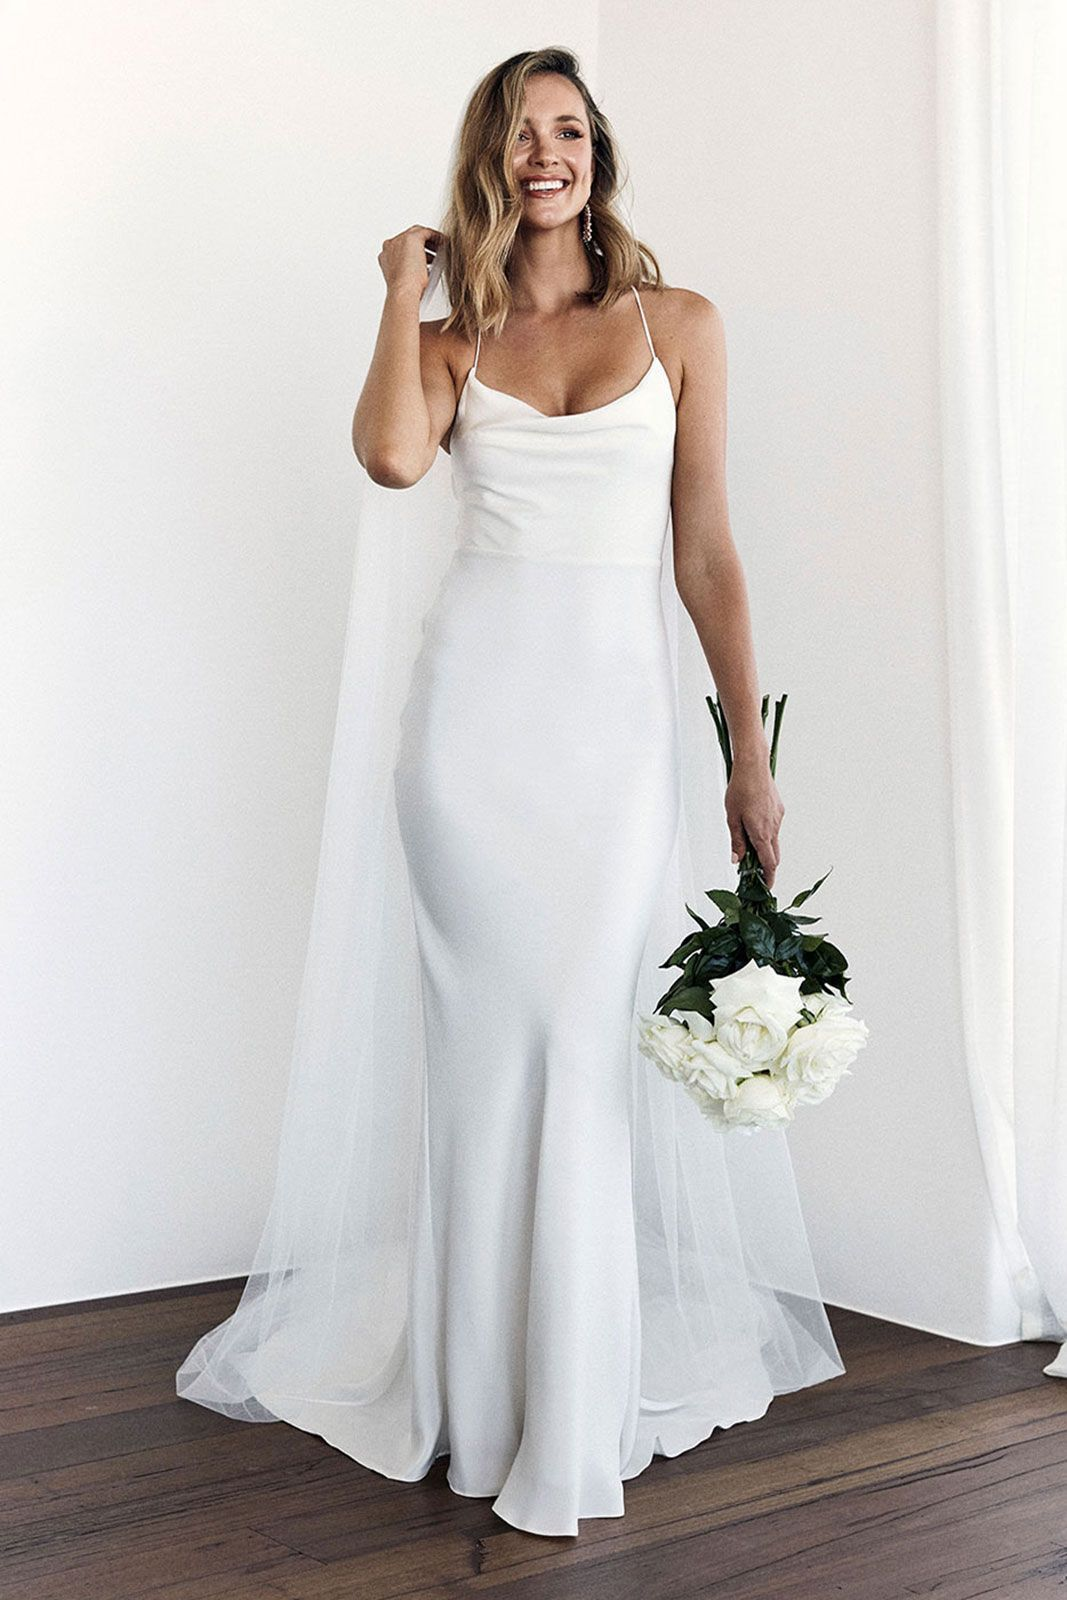 A Luxurious Double Layered Crepe De Chine Silk Wedding Gown With